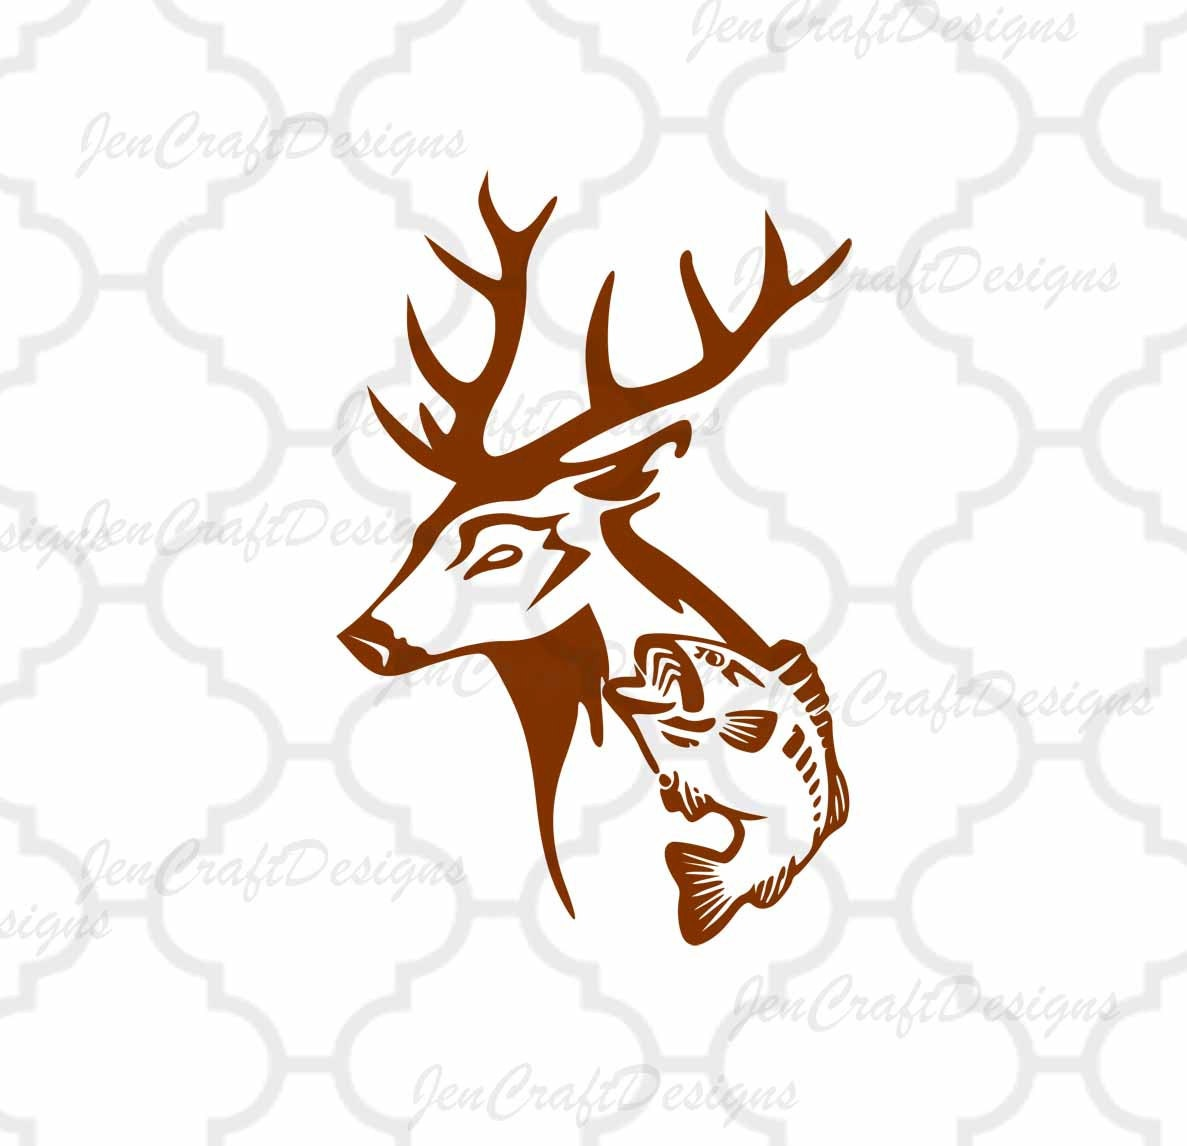 Product info also Deer Head 1 Applique Embroidery Design as well Willow deer baby shower invitation forest pink 161522986926933994 as well 1863553716 besides Woodland Creatures Nursery Decor Canvas Wall Art Fox Deer Bear. on deer cart designs